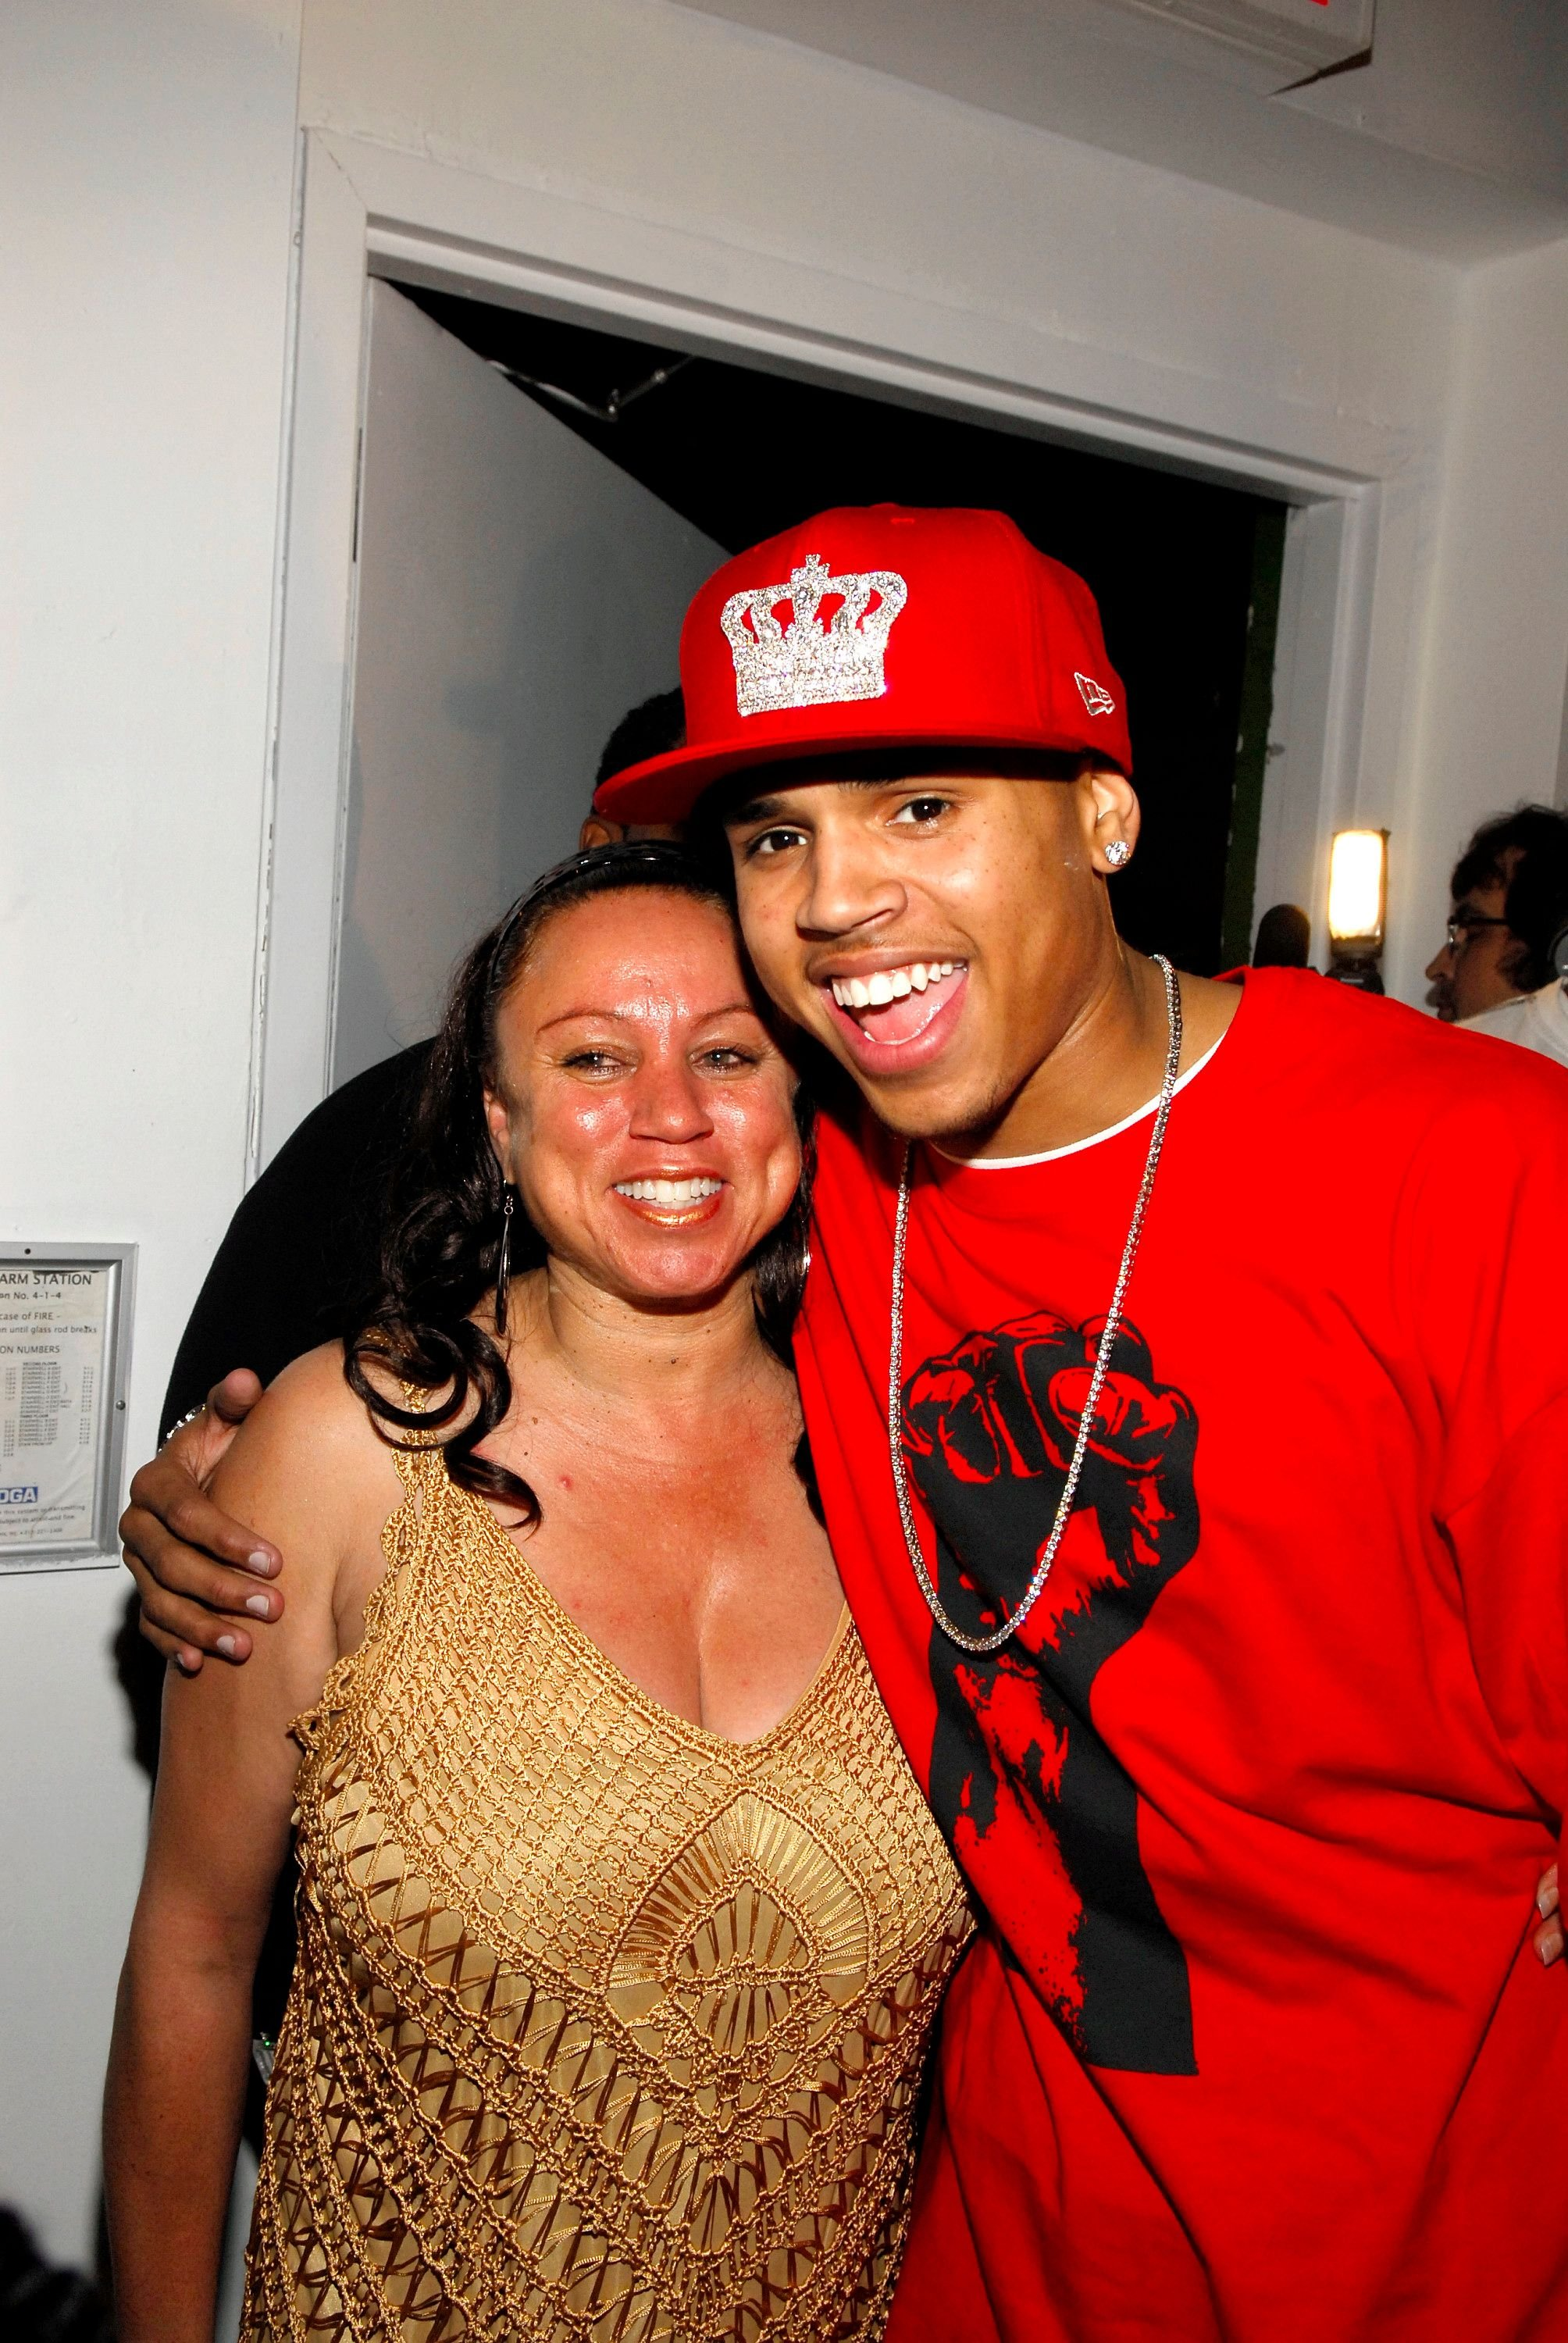 Joyce Hawkins and Chris Brown at his birthday bash at Avalon on May 06, 2007 in New York City | Photo: GettyImages